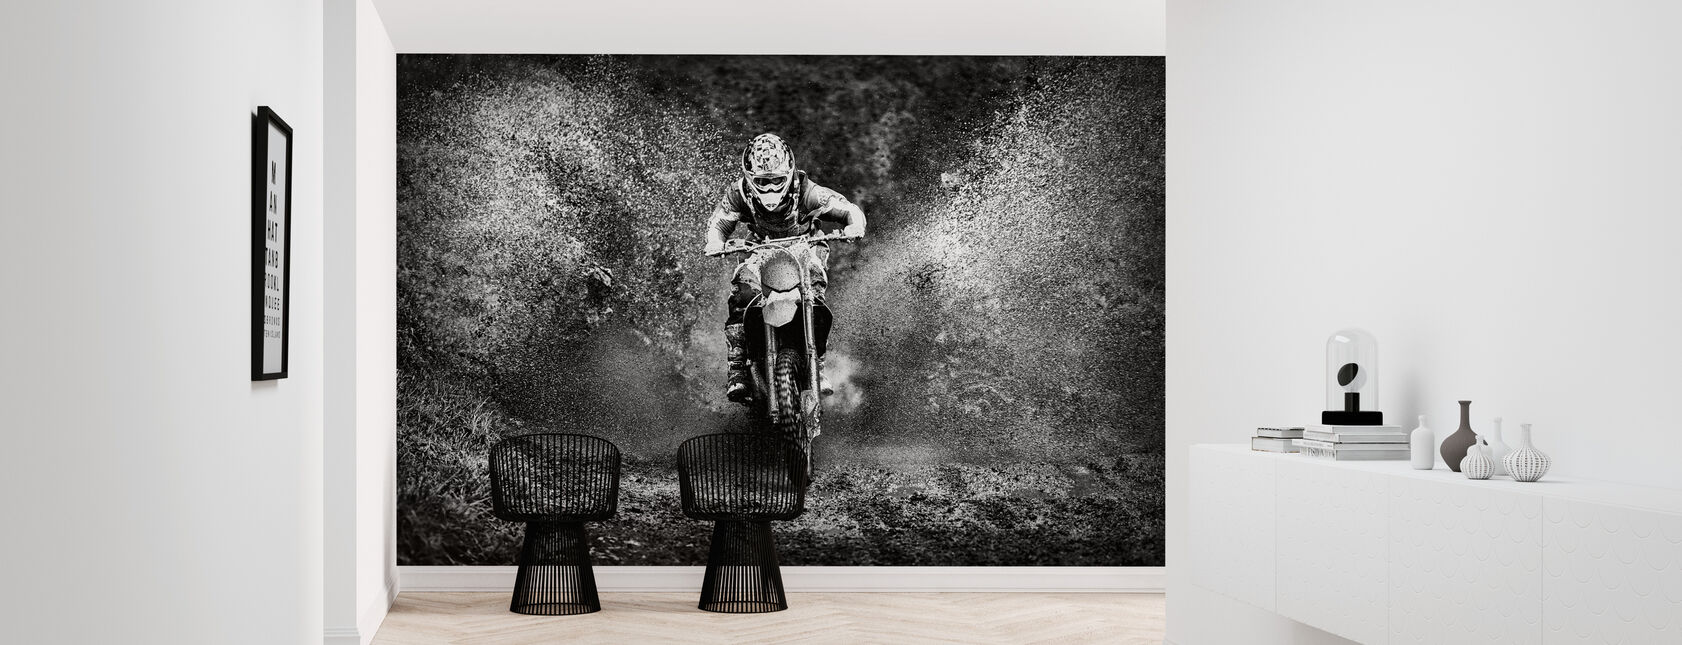 Spray Mud Motorcycle, black and white - Wallpaper - Hallway